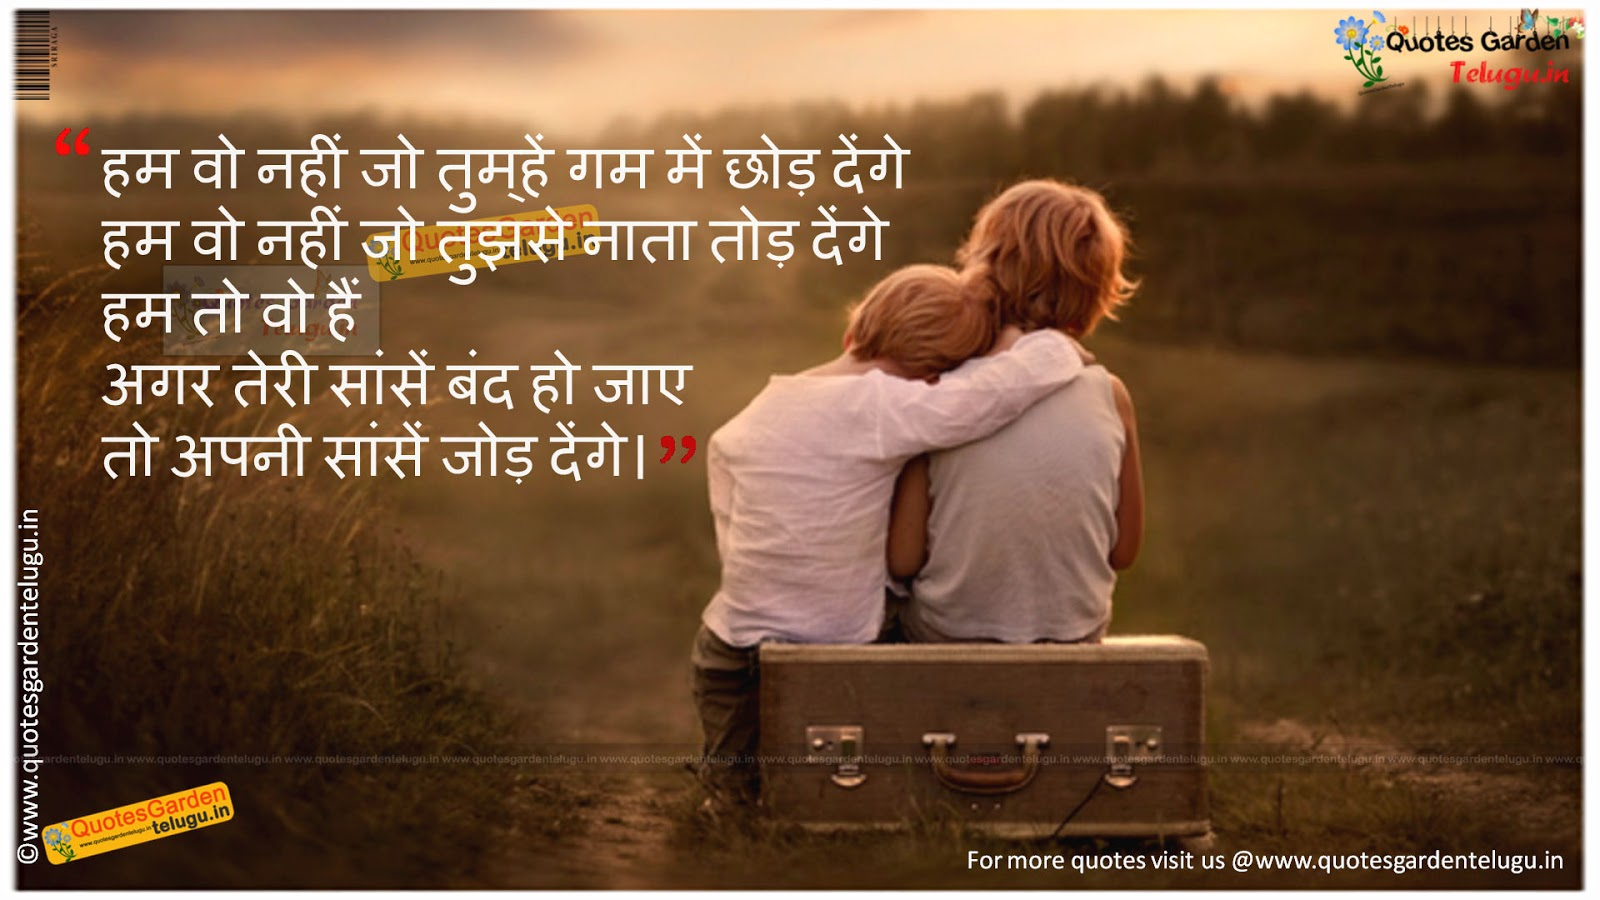 Quotes About Love And Friendship In Hindi : Best friendship quotes in hindi with HD wallpapers QUOTES GARDEN ...